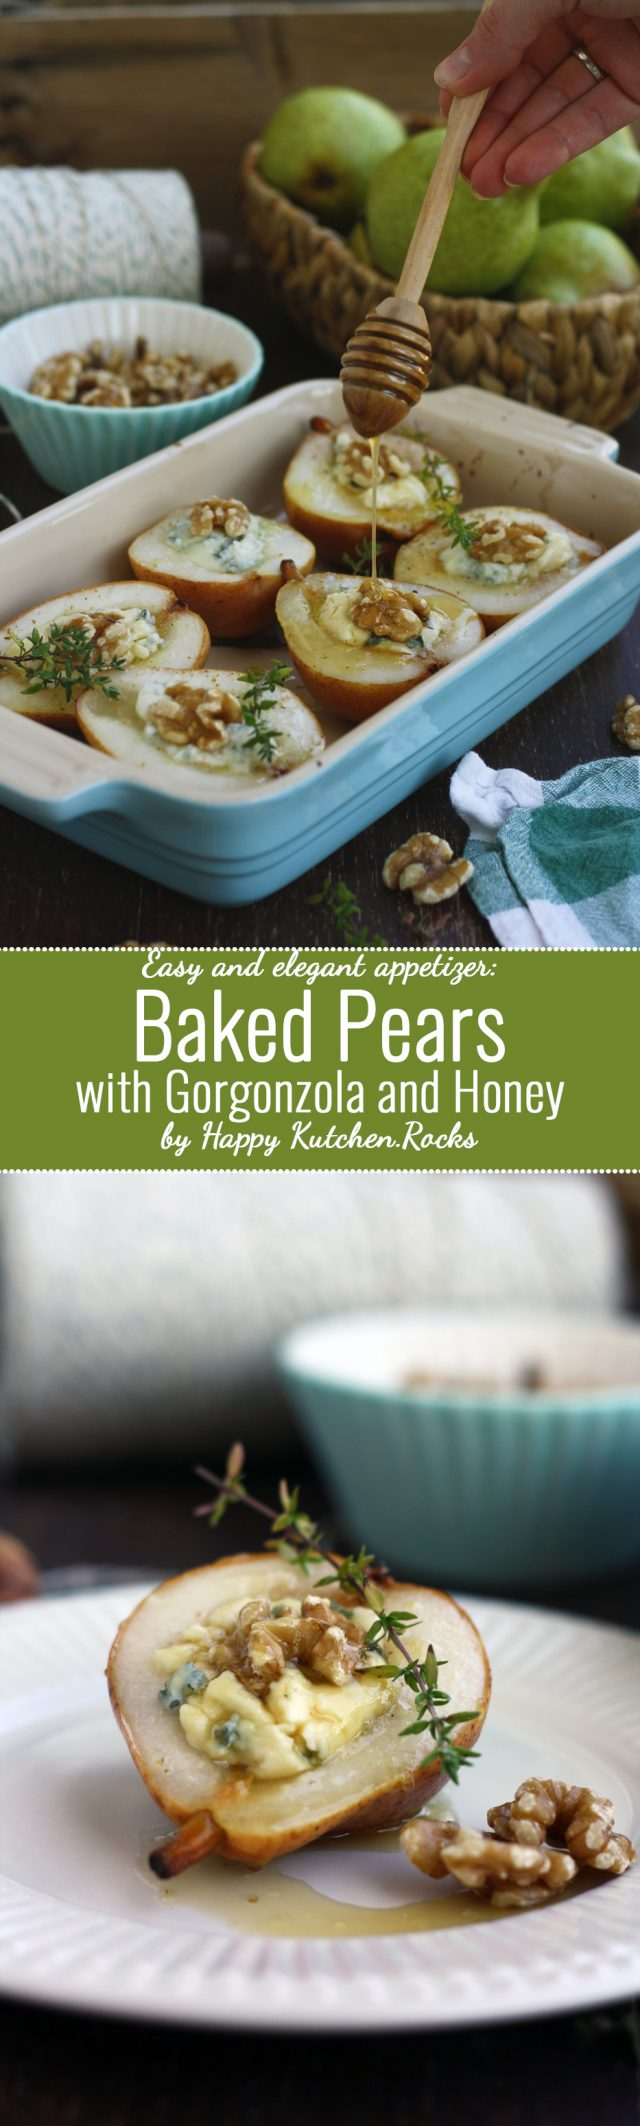 Baked Pears with Gorgonzola and Honey: Easy, delicious and elegant appetizer for special occasions. You only need 5 ingredients and 20 minutes to make it!